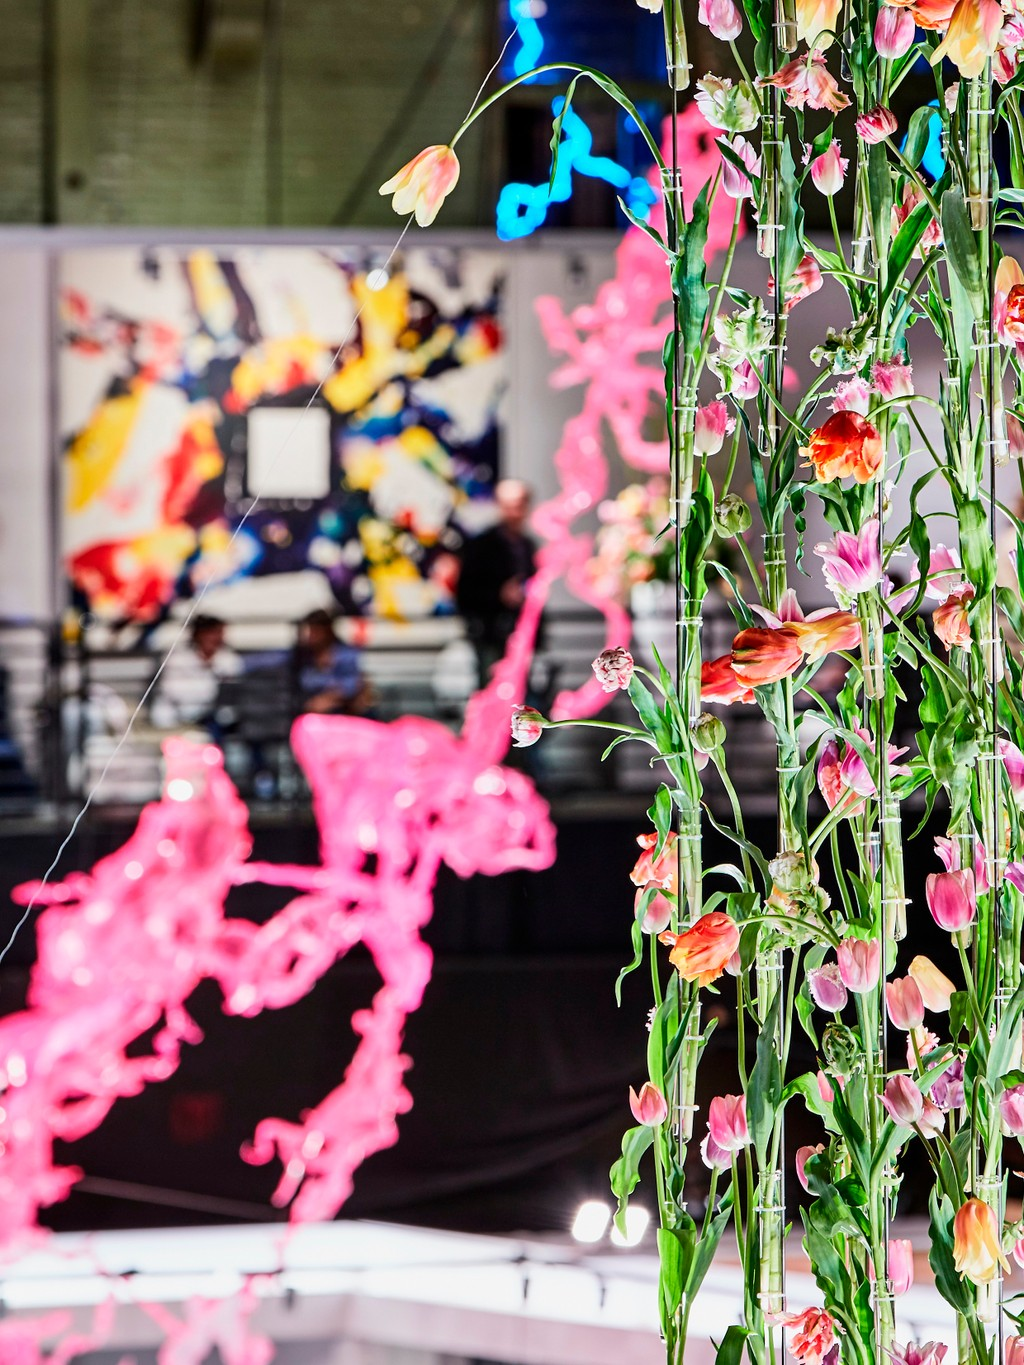 flowers at art gallery